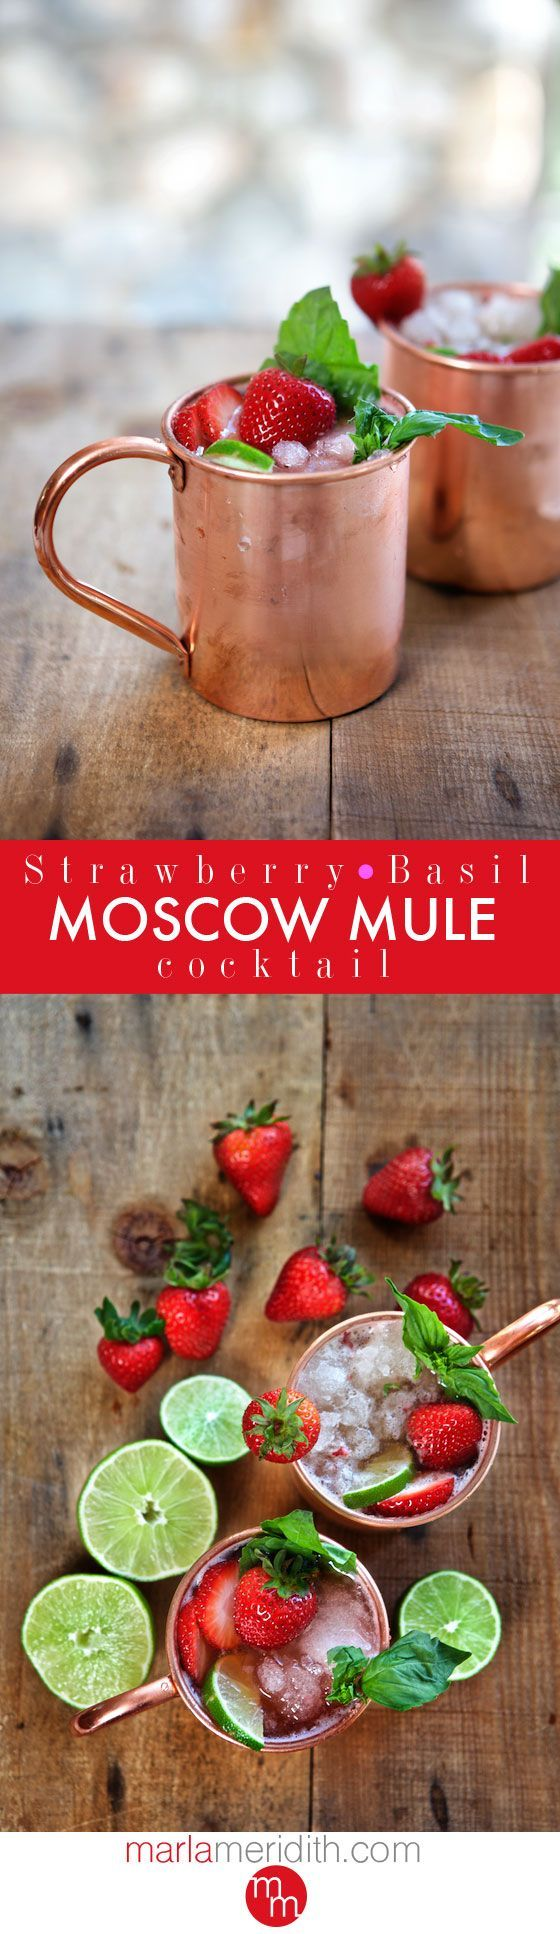 Strawberry Basil Moscow Mule Cocktail | The ultimate summer libation! MarlaMeridith.com ( @marlameridith )